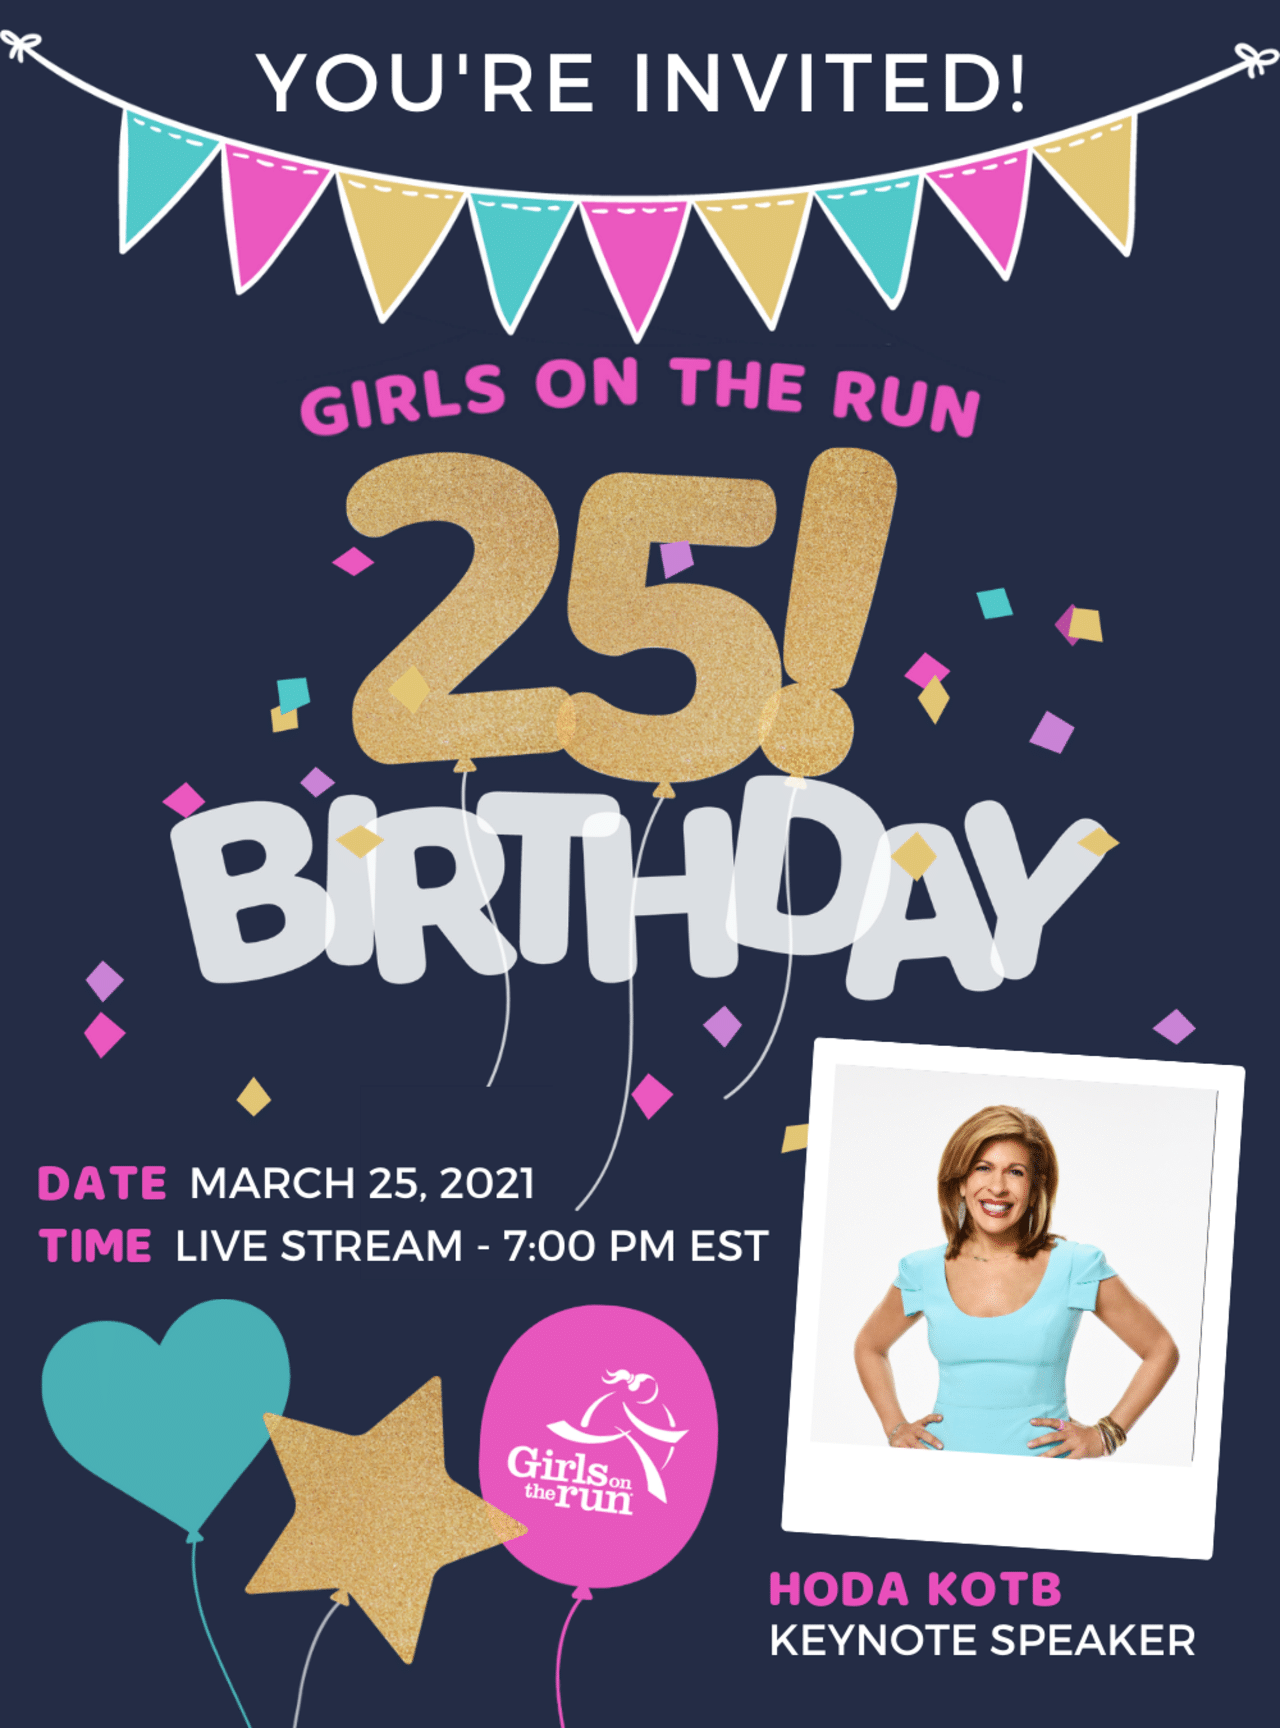 You're invited to the Girls on the Run 25th Birthday virtual celebration event!